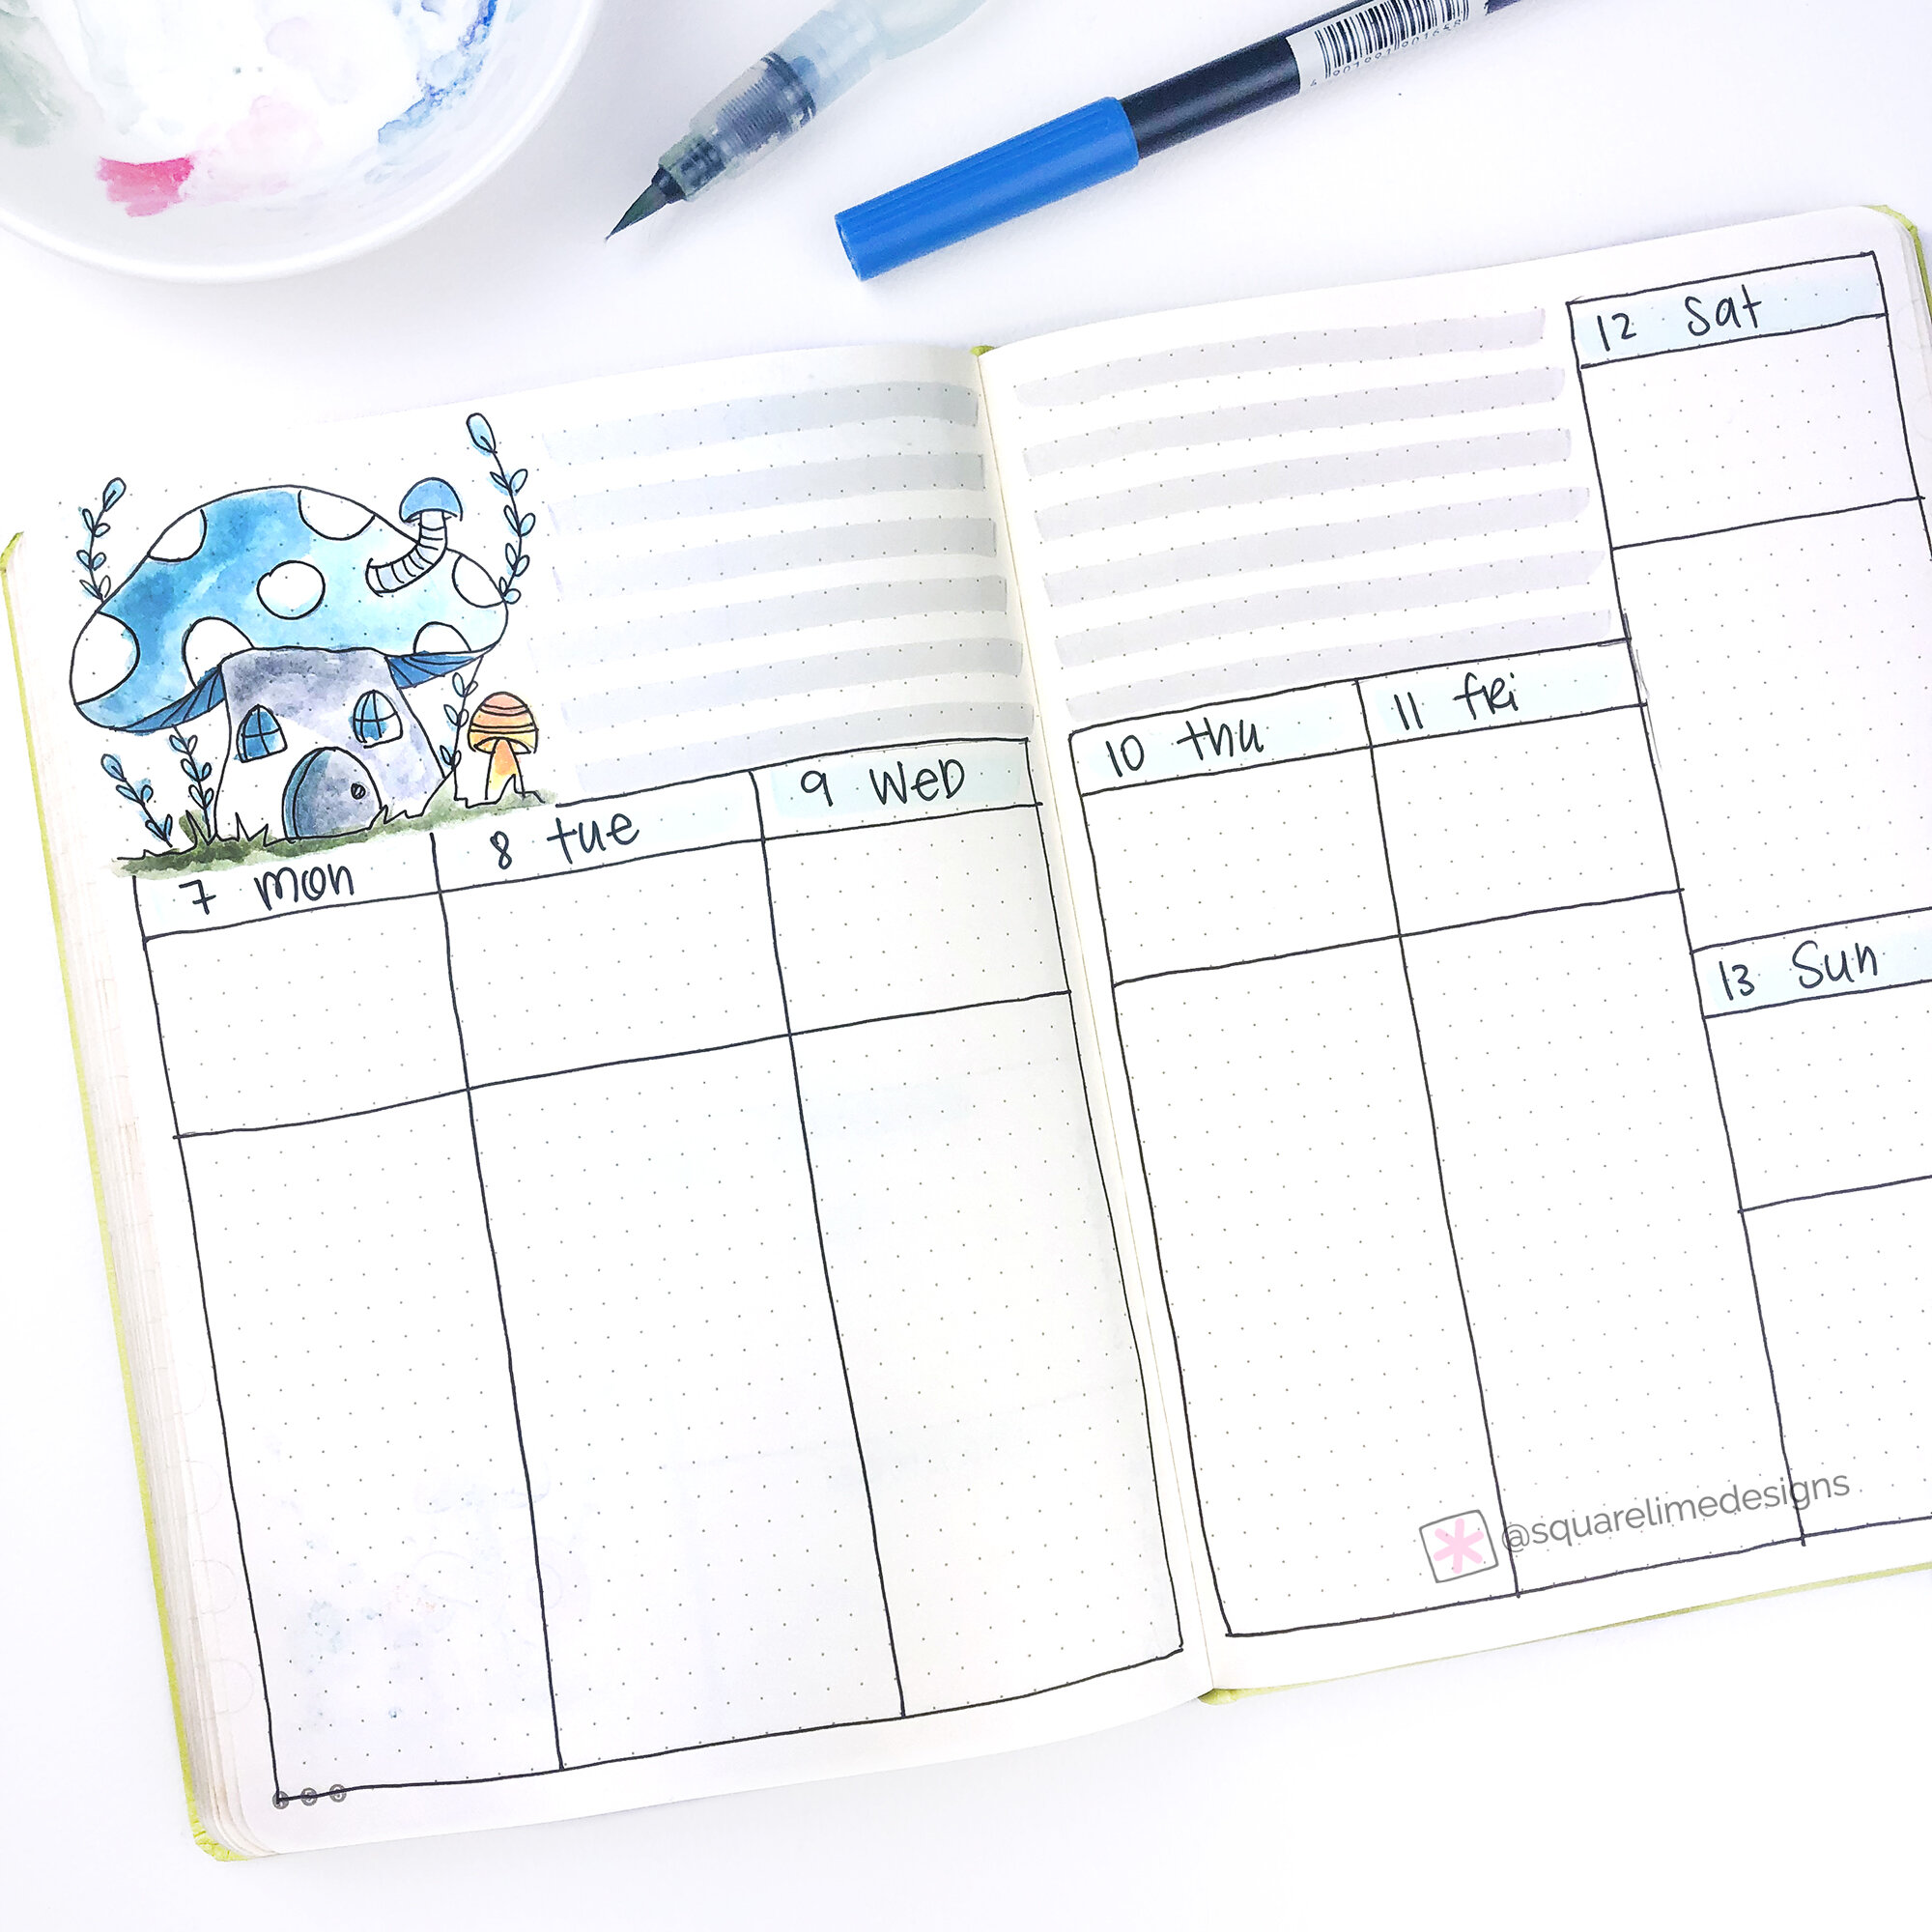 Bullet Journal Weekly Spread Ideas for October 2019 - www.squarelimedesigns.com